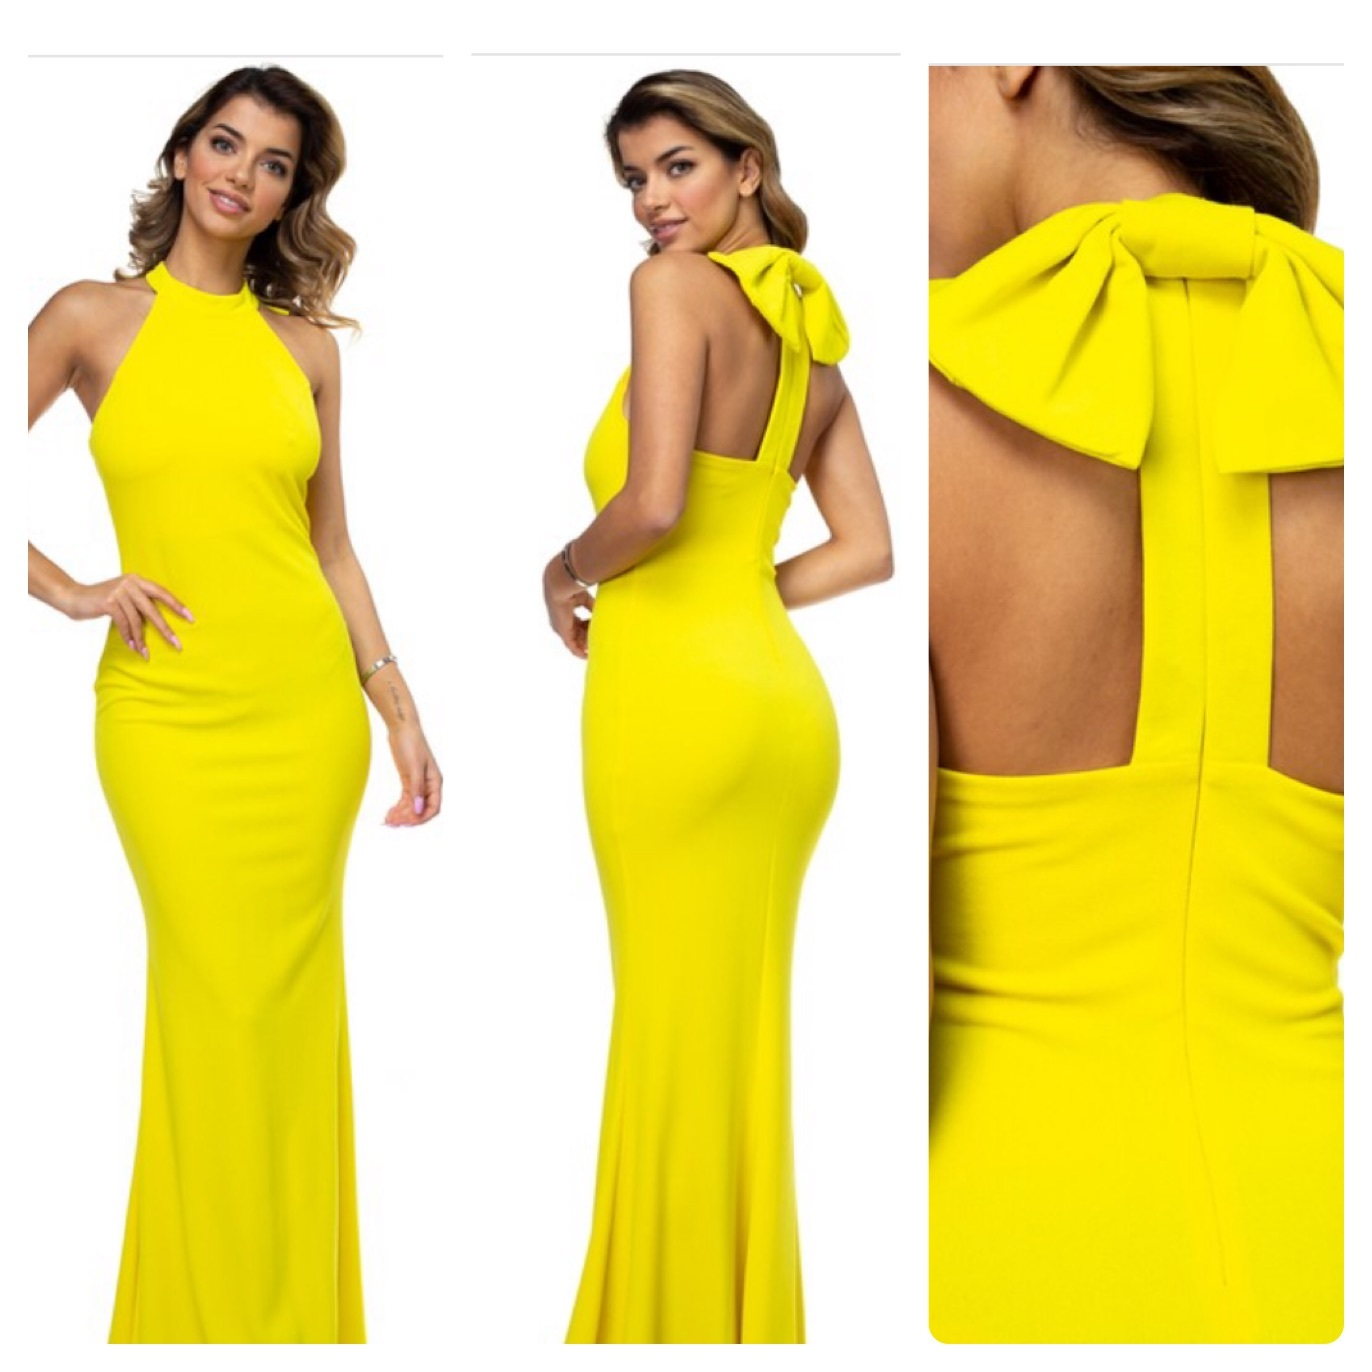 MELLOW YELLOW DRESS $65